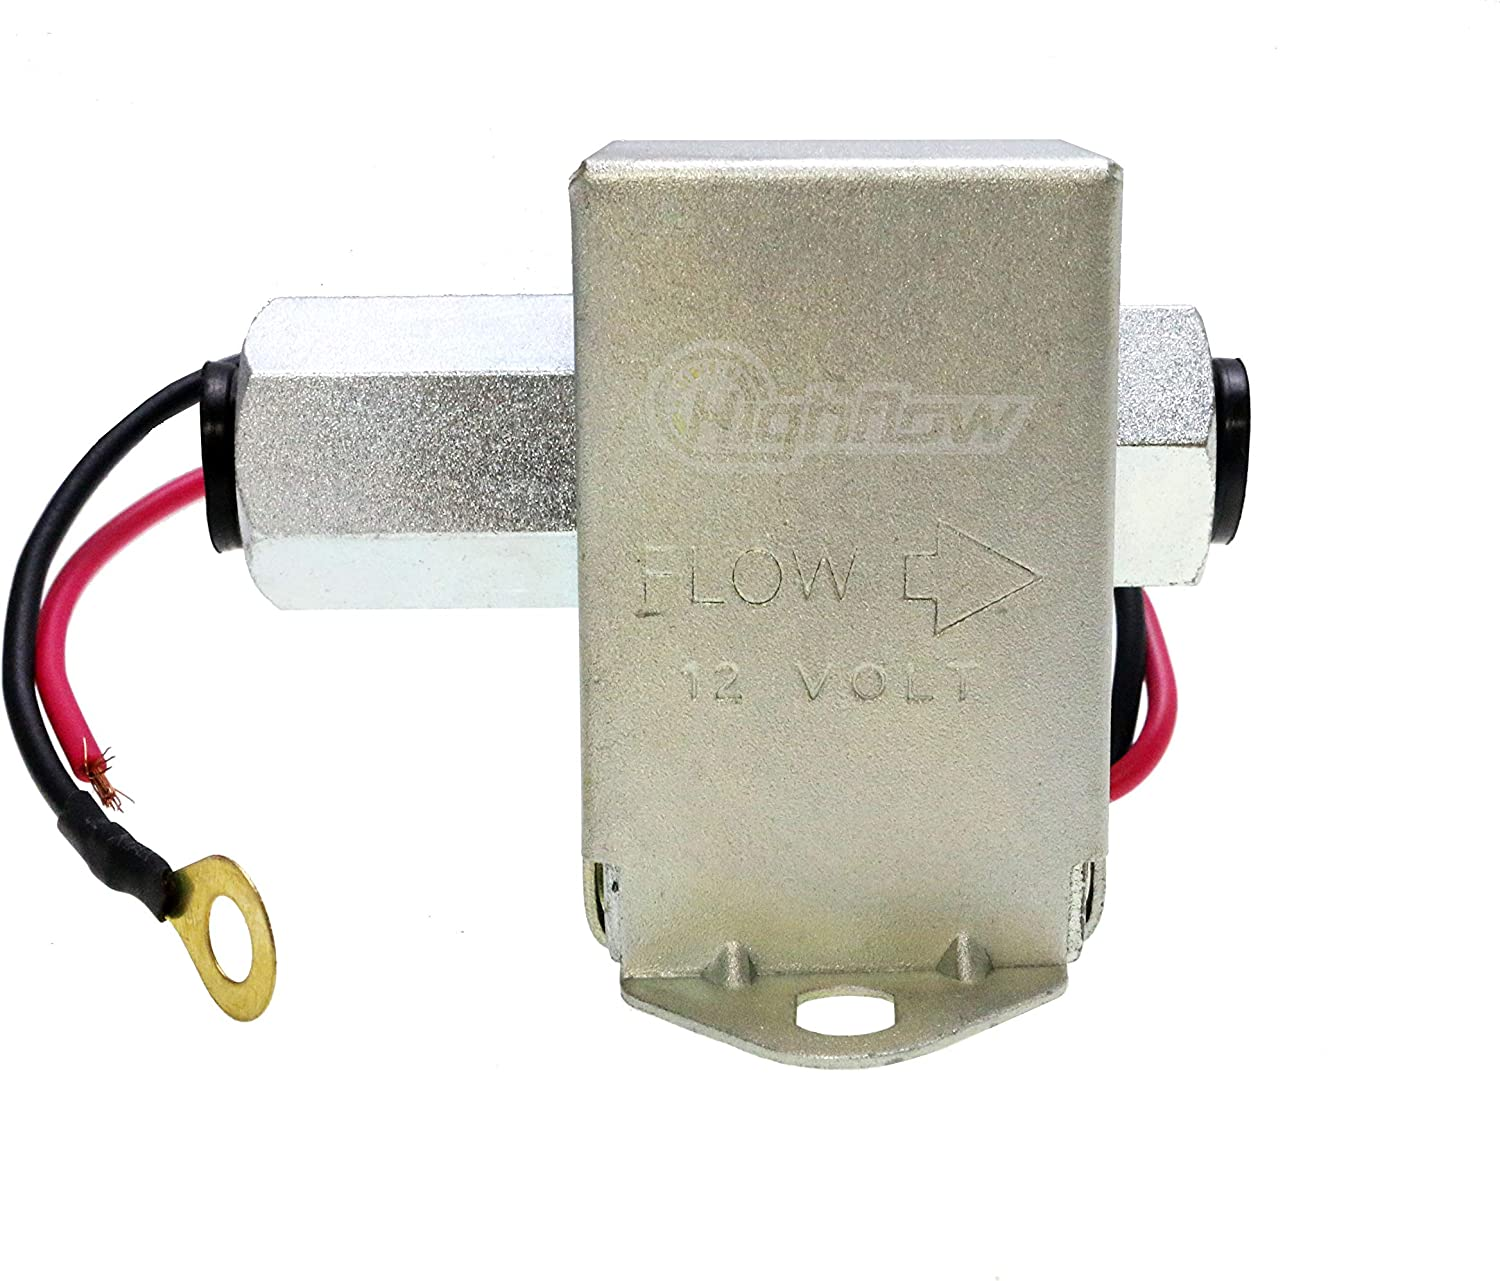 HFP-187 Marine//Outboard External Inline Fuel Pump Replacement for OEM Part Mercury 852521T1 852521T 2000-2005